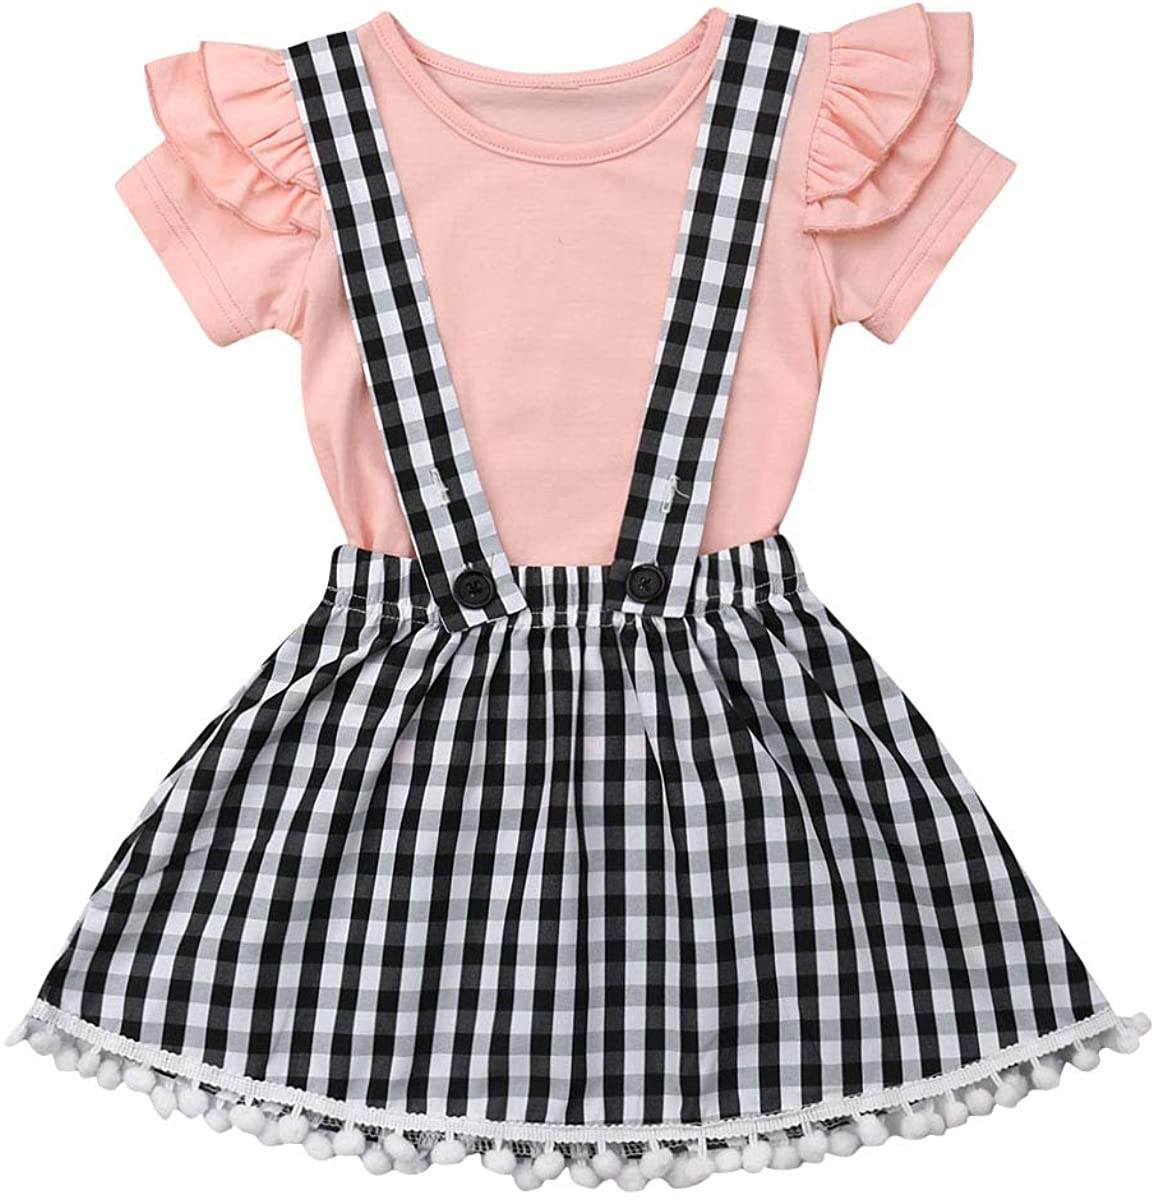 Kid Girls Summer Skirts Set Solid Ruffle T-Shirt +Plaid Dress Strap Tutu Skirts Suspender Outfits